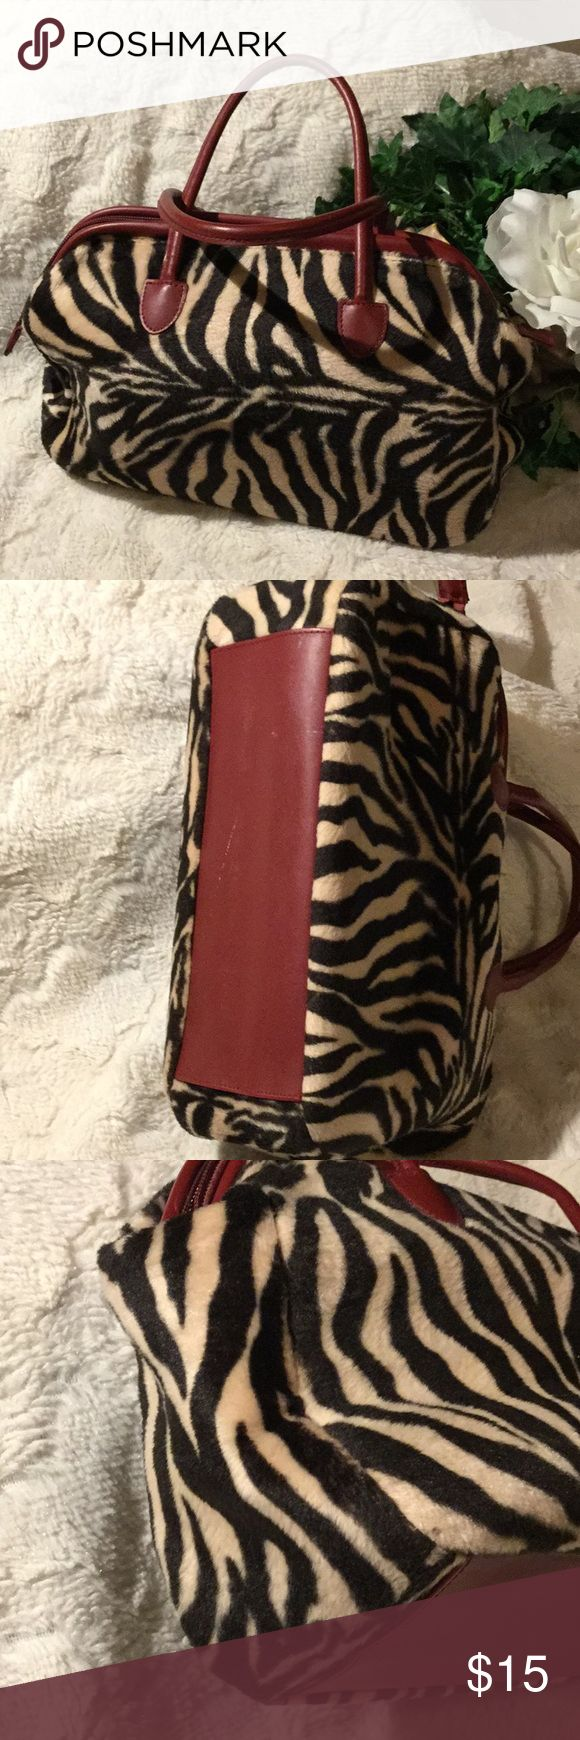 EUC Victoria Secret Faux Fur Animal Print Purse Excellent used condition. No rips, tears or stains. Inside is immaculate. Vegan dark red leather on bottom, handles & zippered opening. Chocolate brown & tan animal faux fur. 11'x 8'x4'. Victoria's Secret Bags Mini Bags